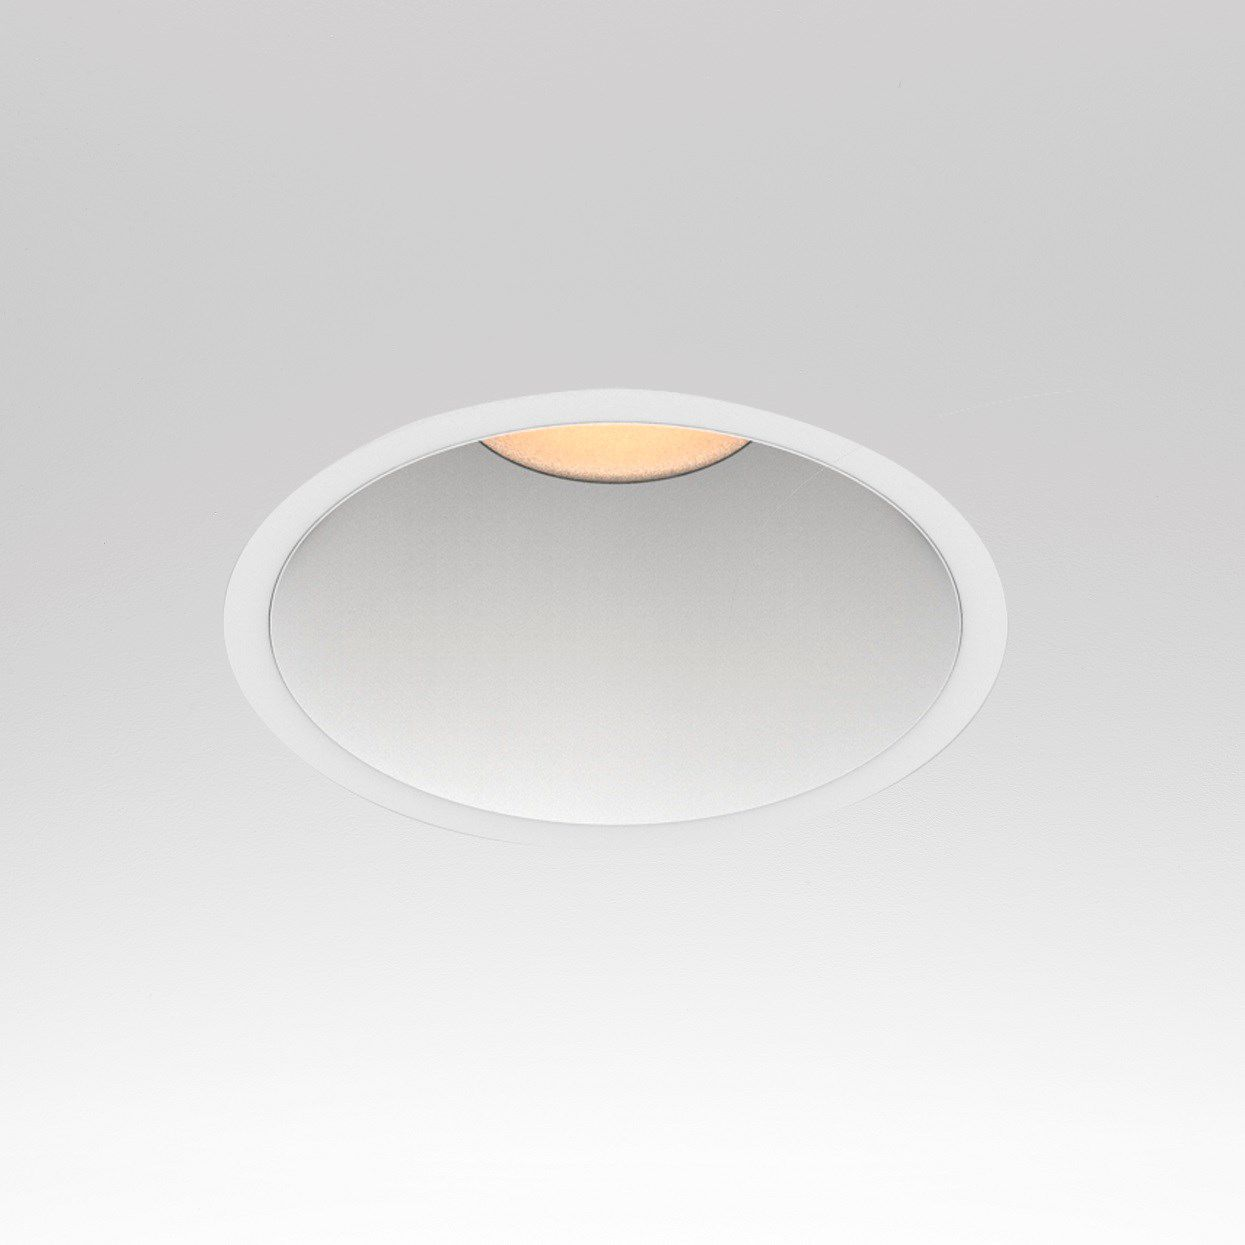 Recessed downlight led round square fraxion 4